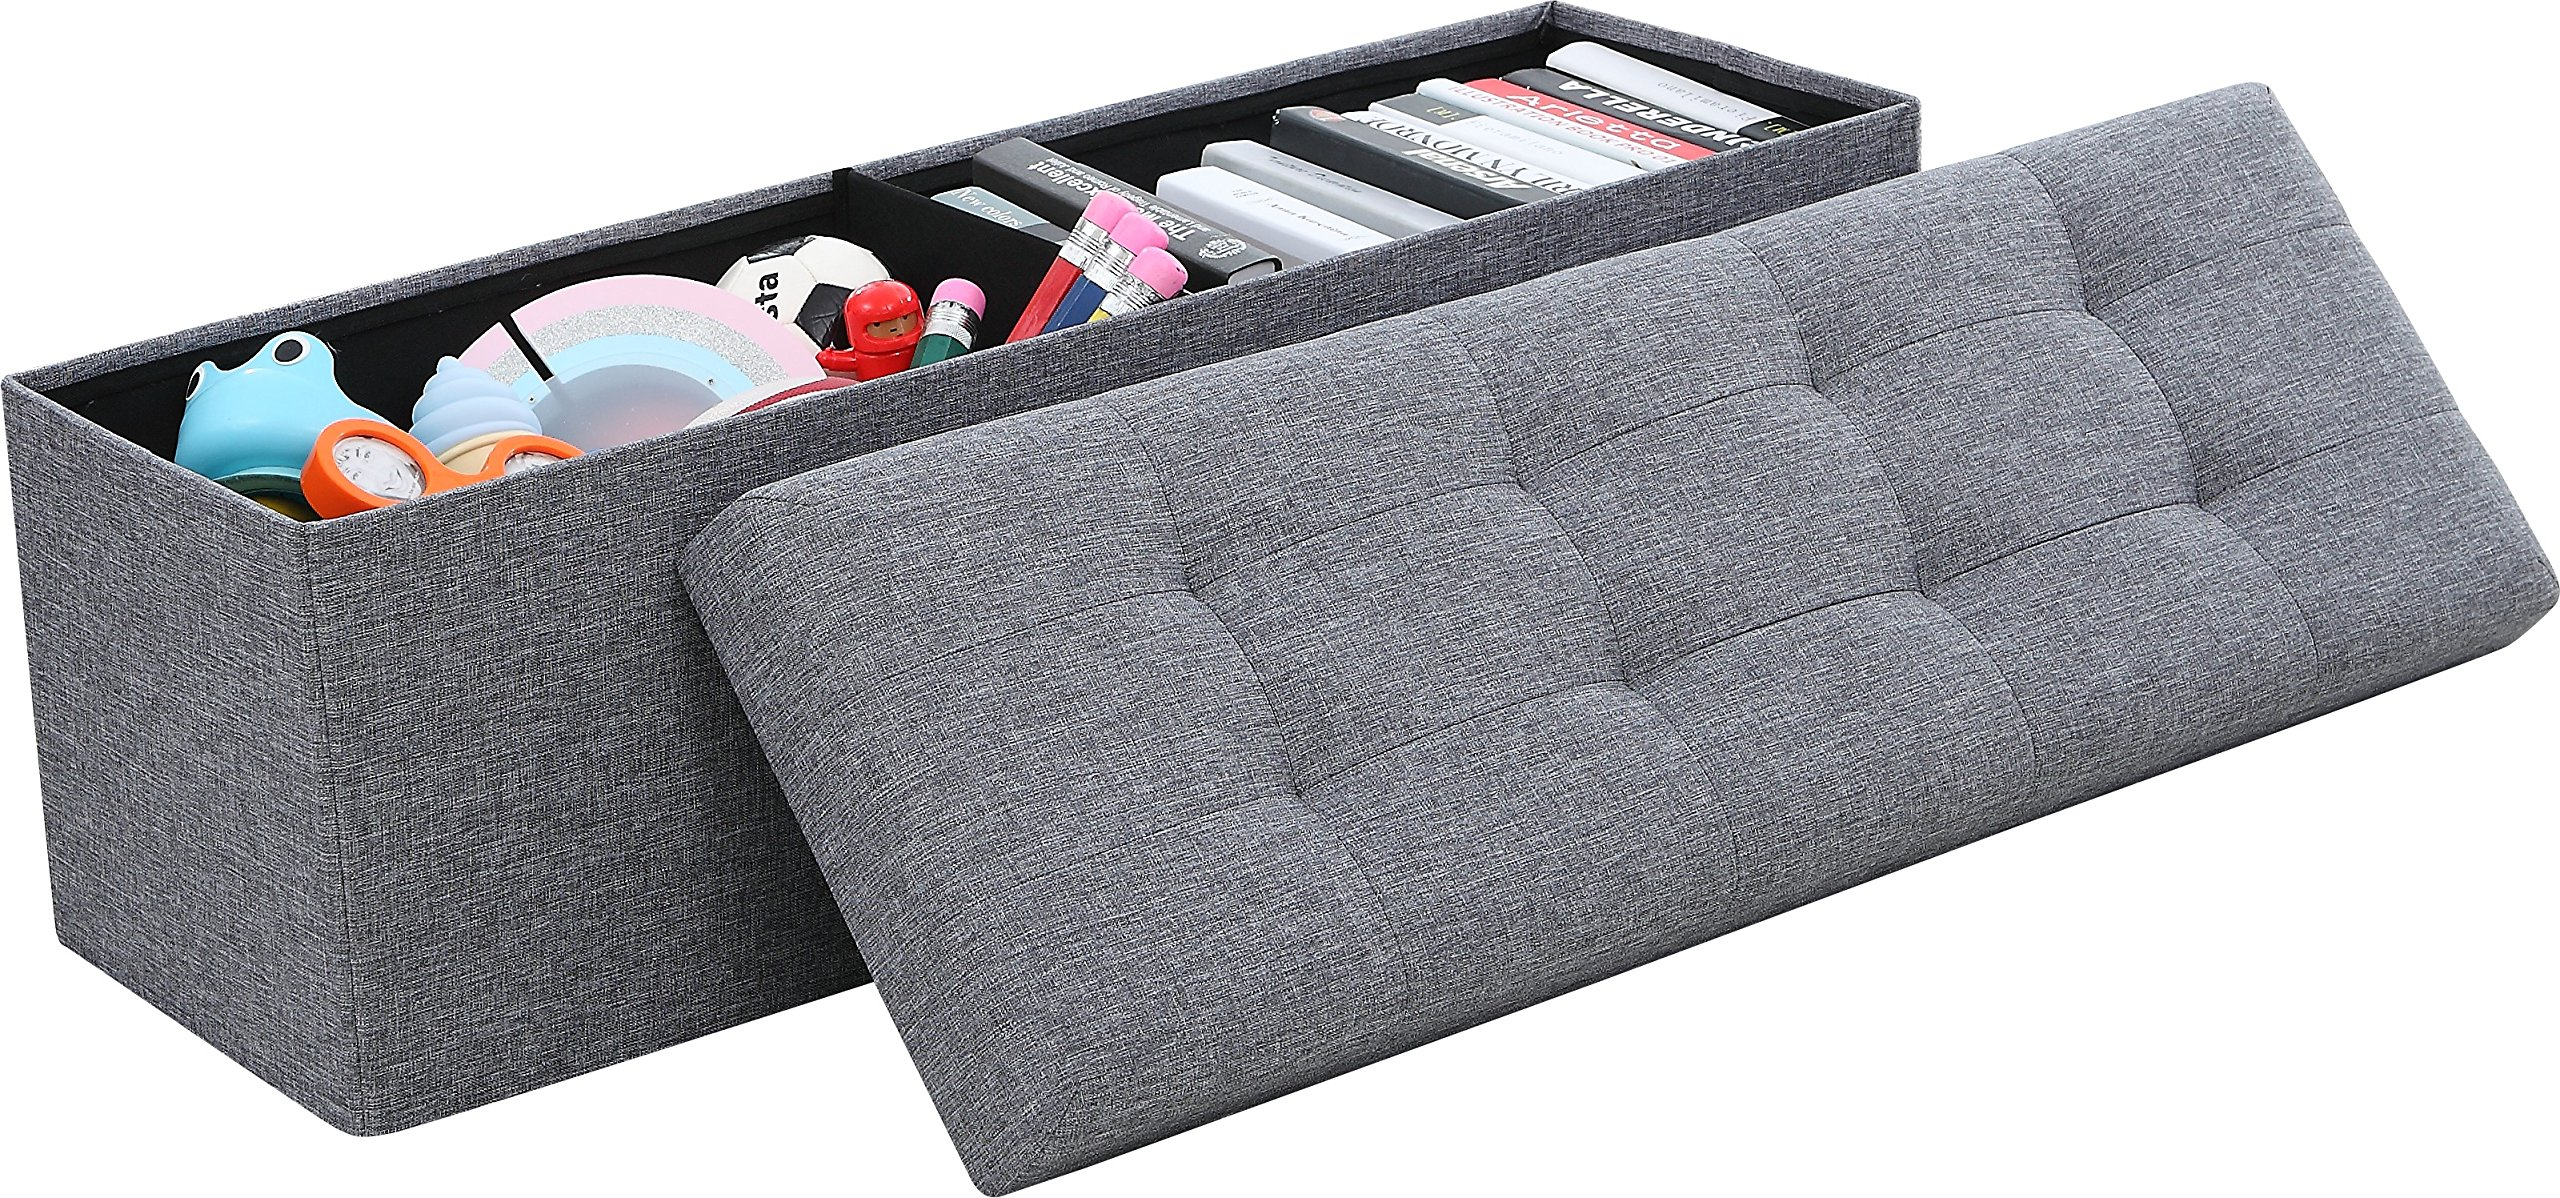 Ornavo Home Foldable Tufted Linen Large Storage Ottoman Bench Foot Rest Stool/Seat - 15'' x 45'' x 15'' (Grey) by Ornavo Home